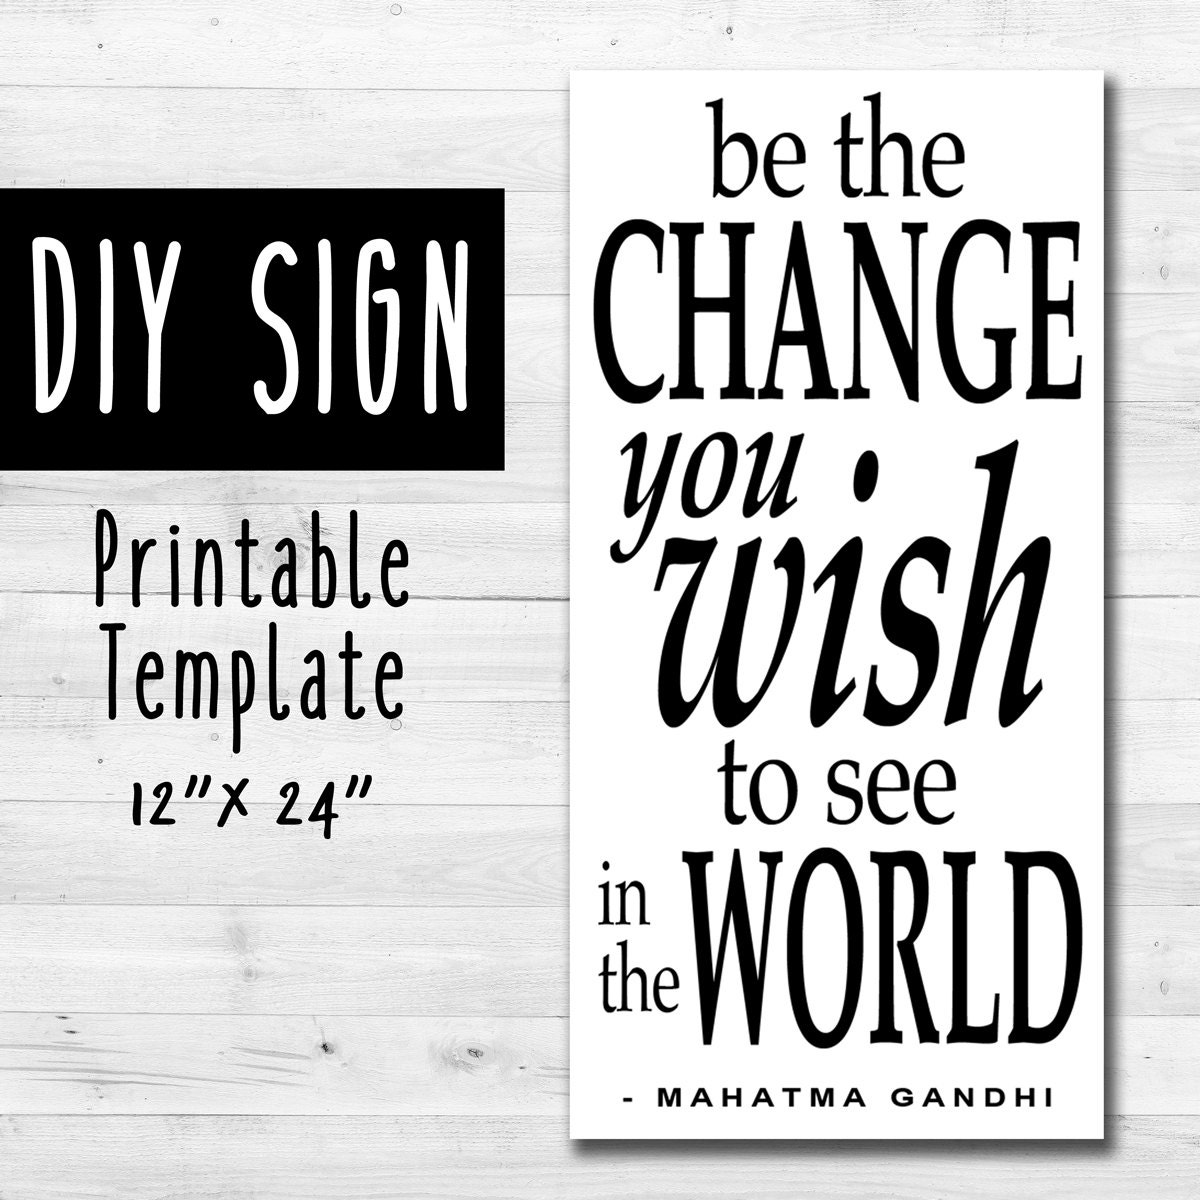 sign templates free downloads - diy sign template instant download 12 x 24 inch sign